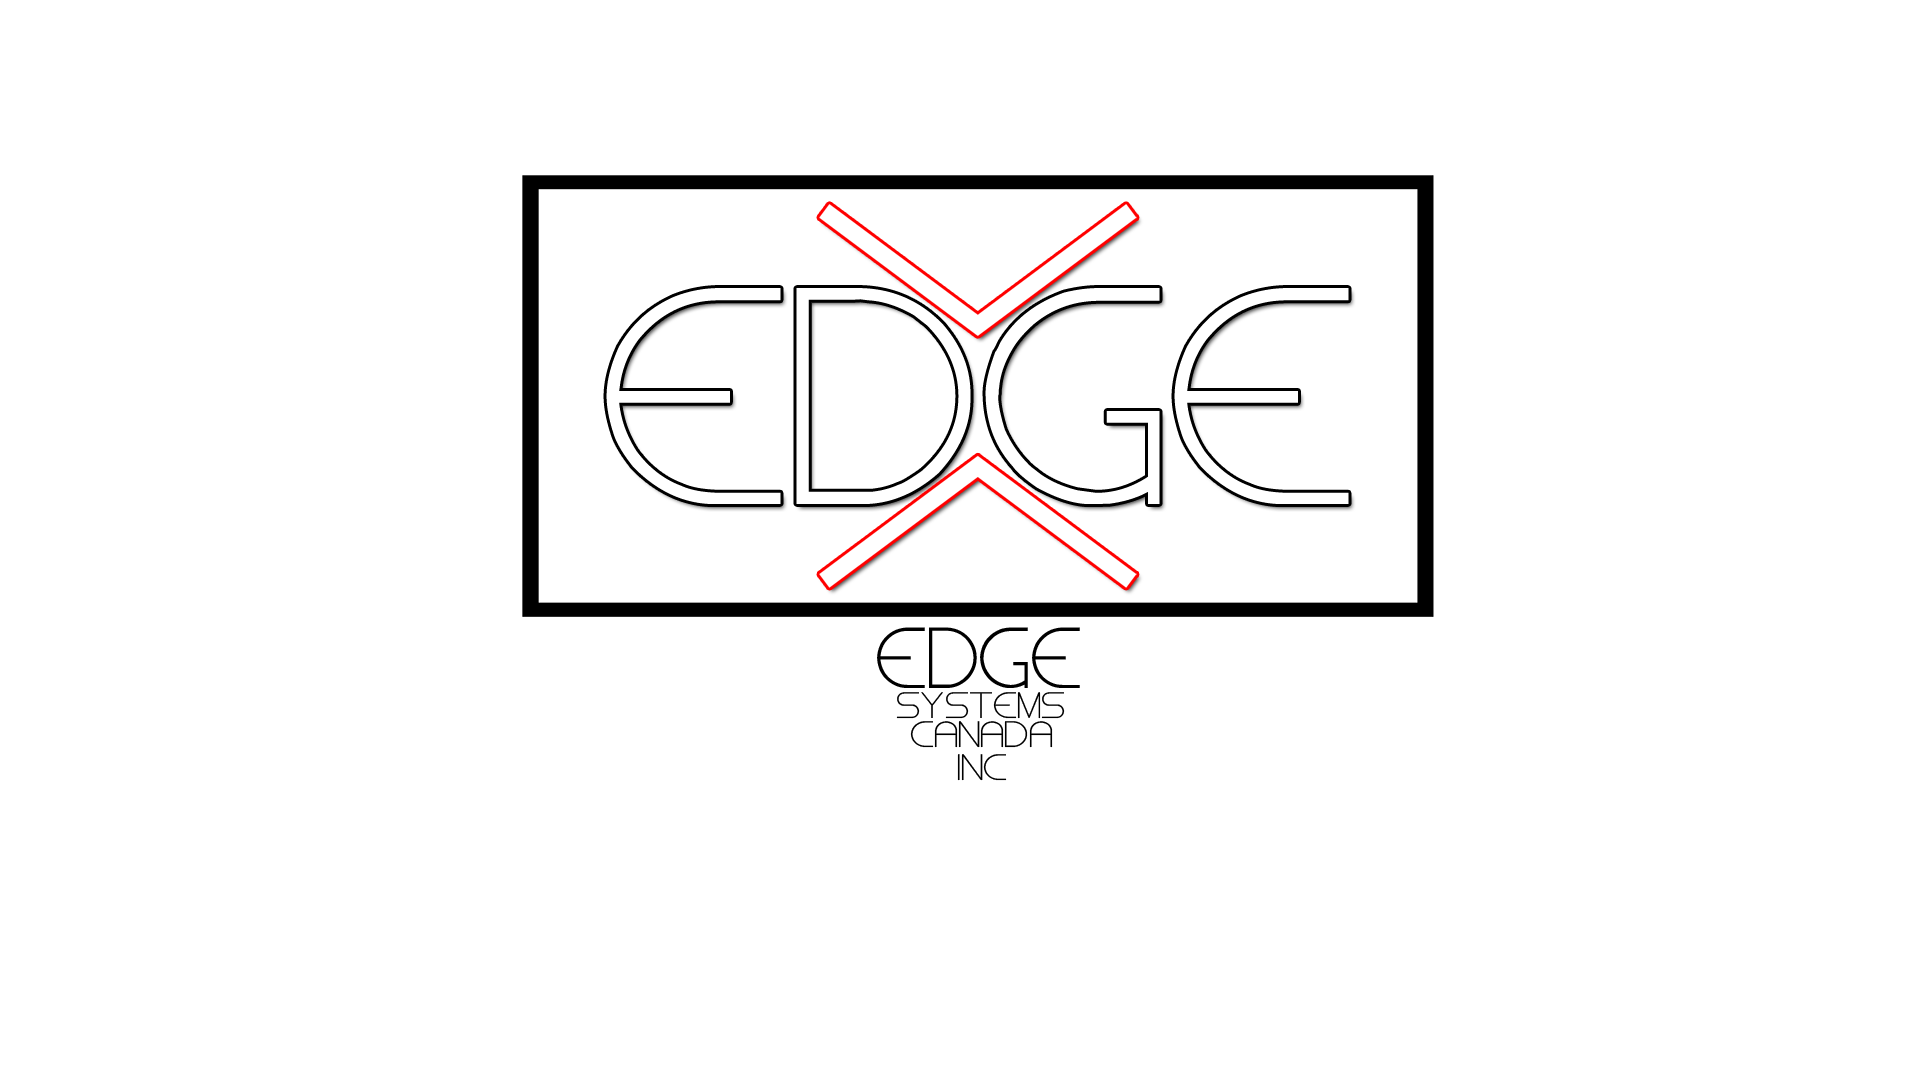 Logo Design by Sam Hedrén - Entry No. 5 in the Logo Design Contest New Logo Design for Edge Systems Canada Inc.